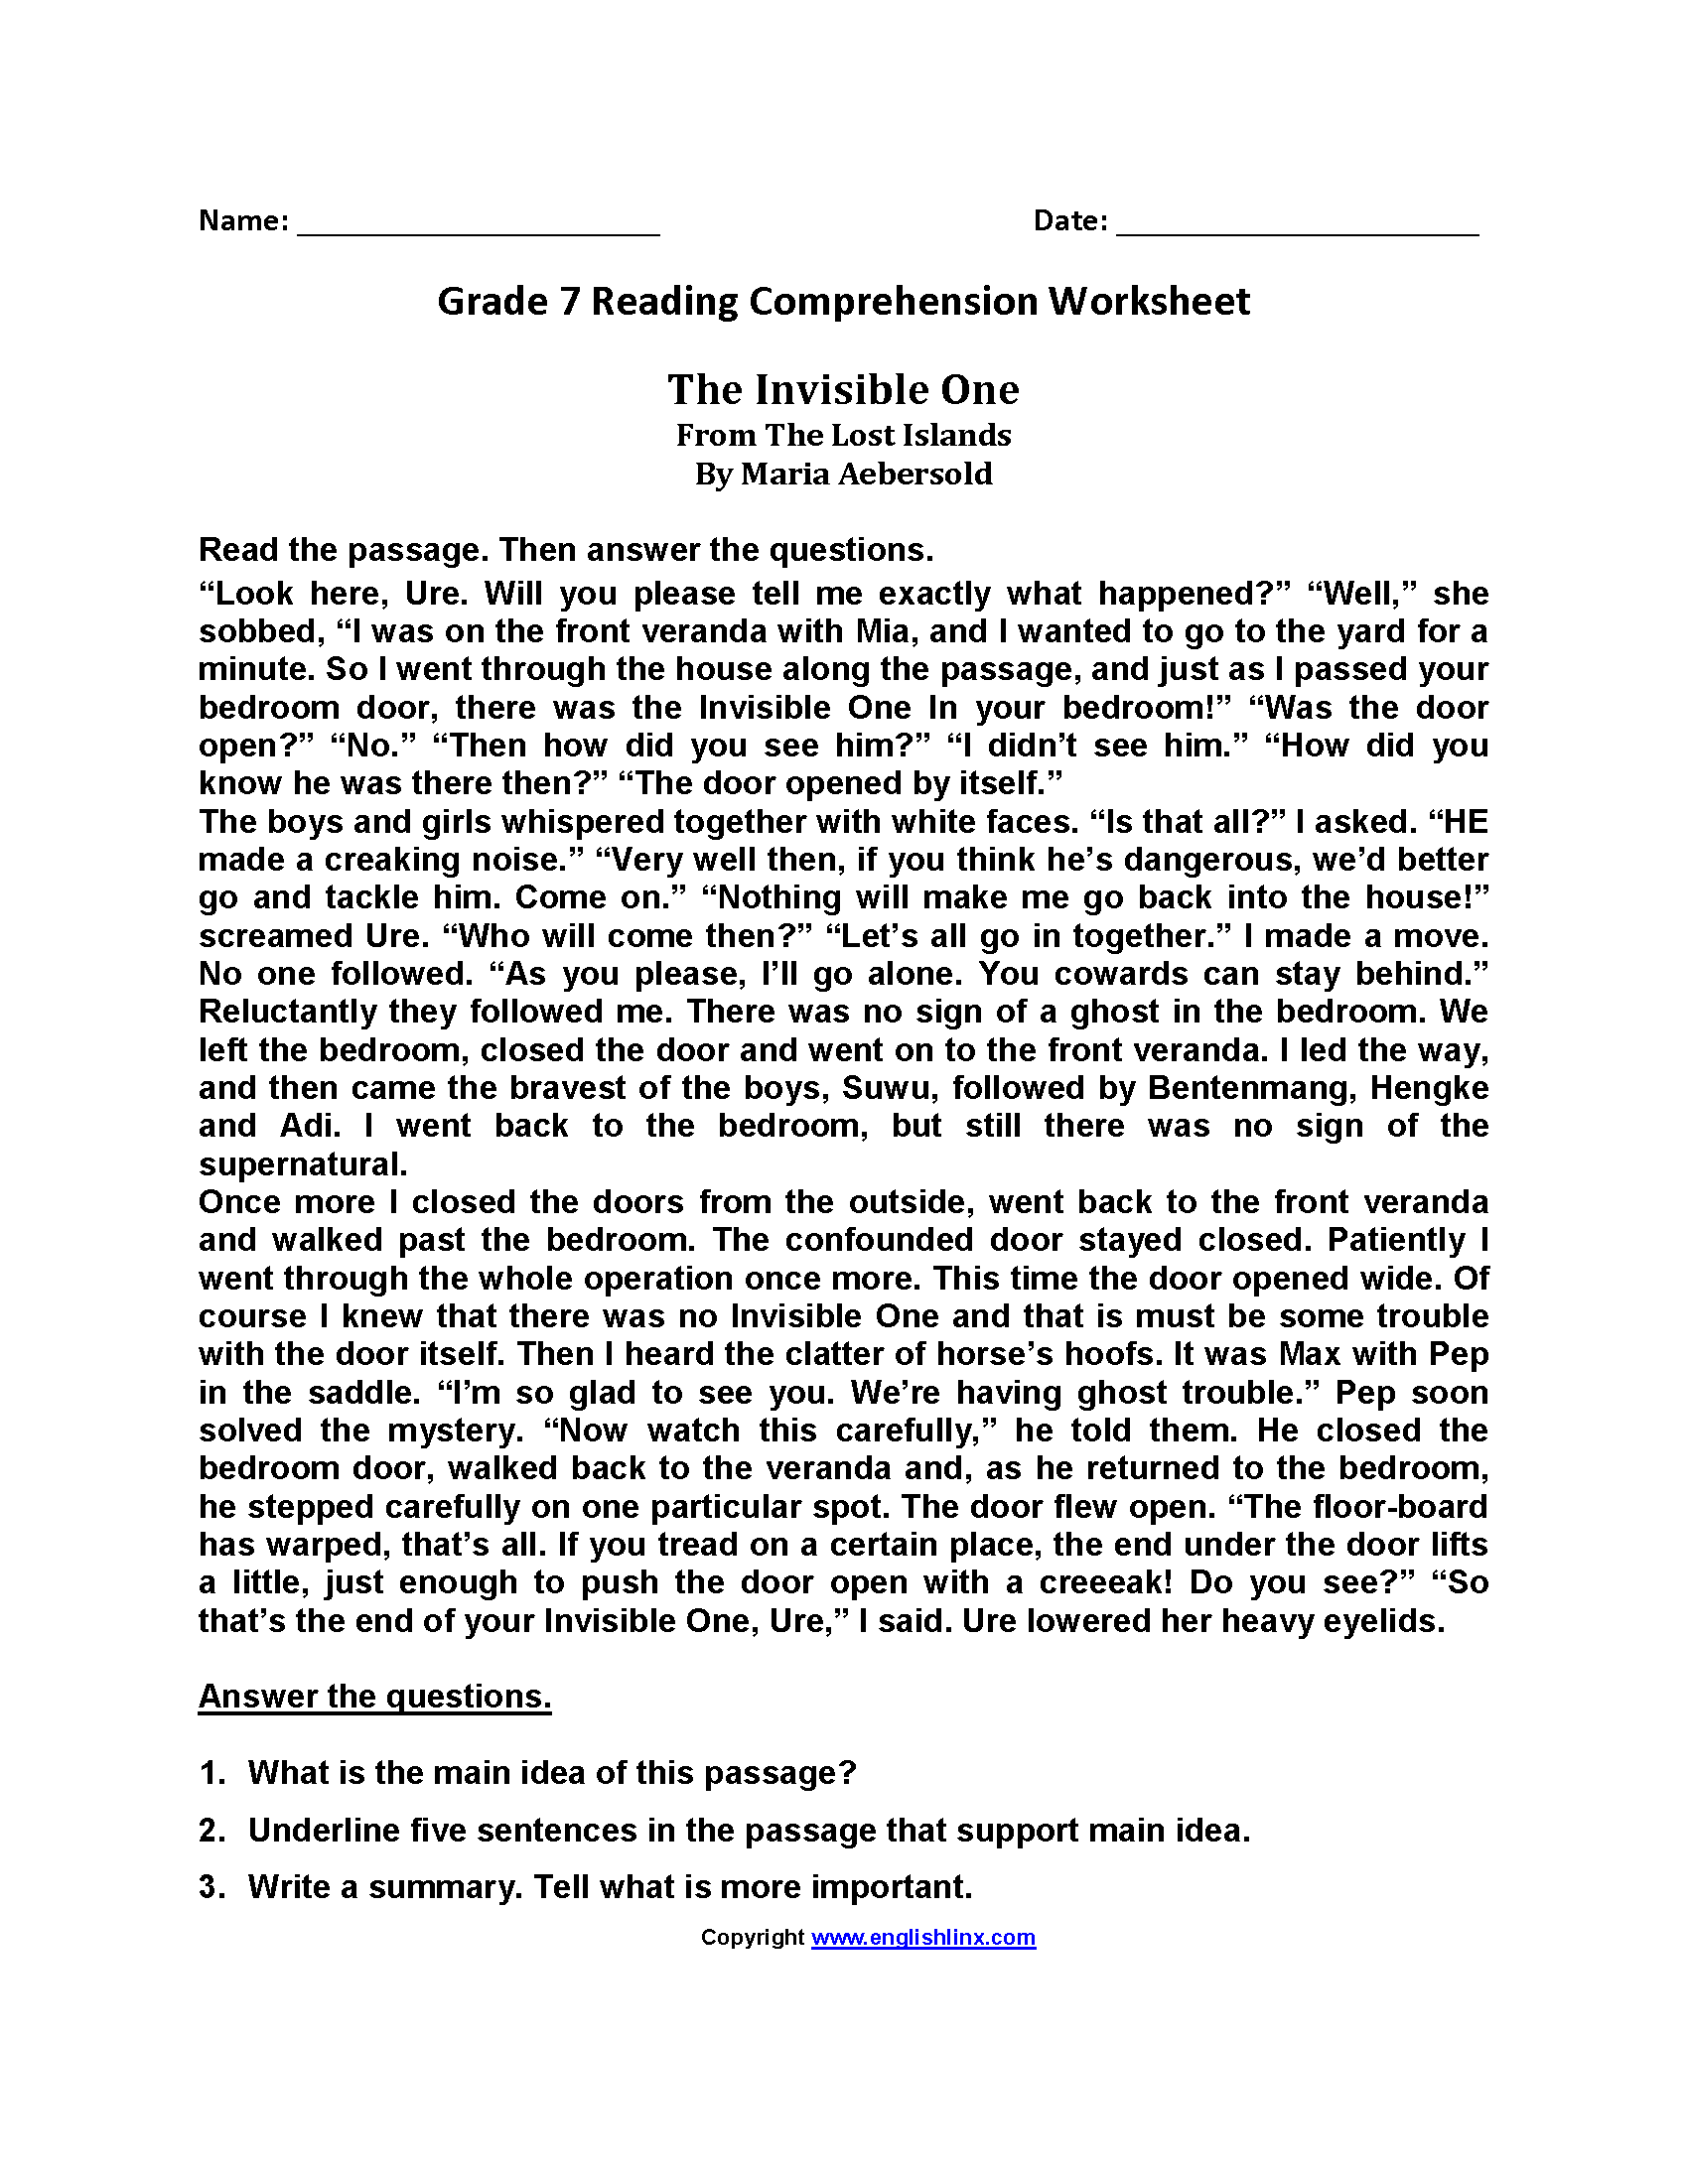 Worksheets Free 7th Grade Reading Comprehension Worksheets reading worksheets seventh grade worksheets